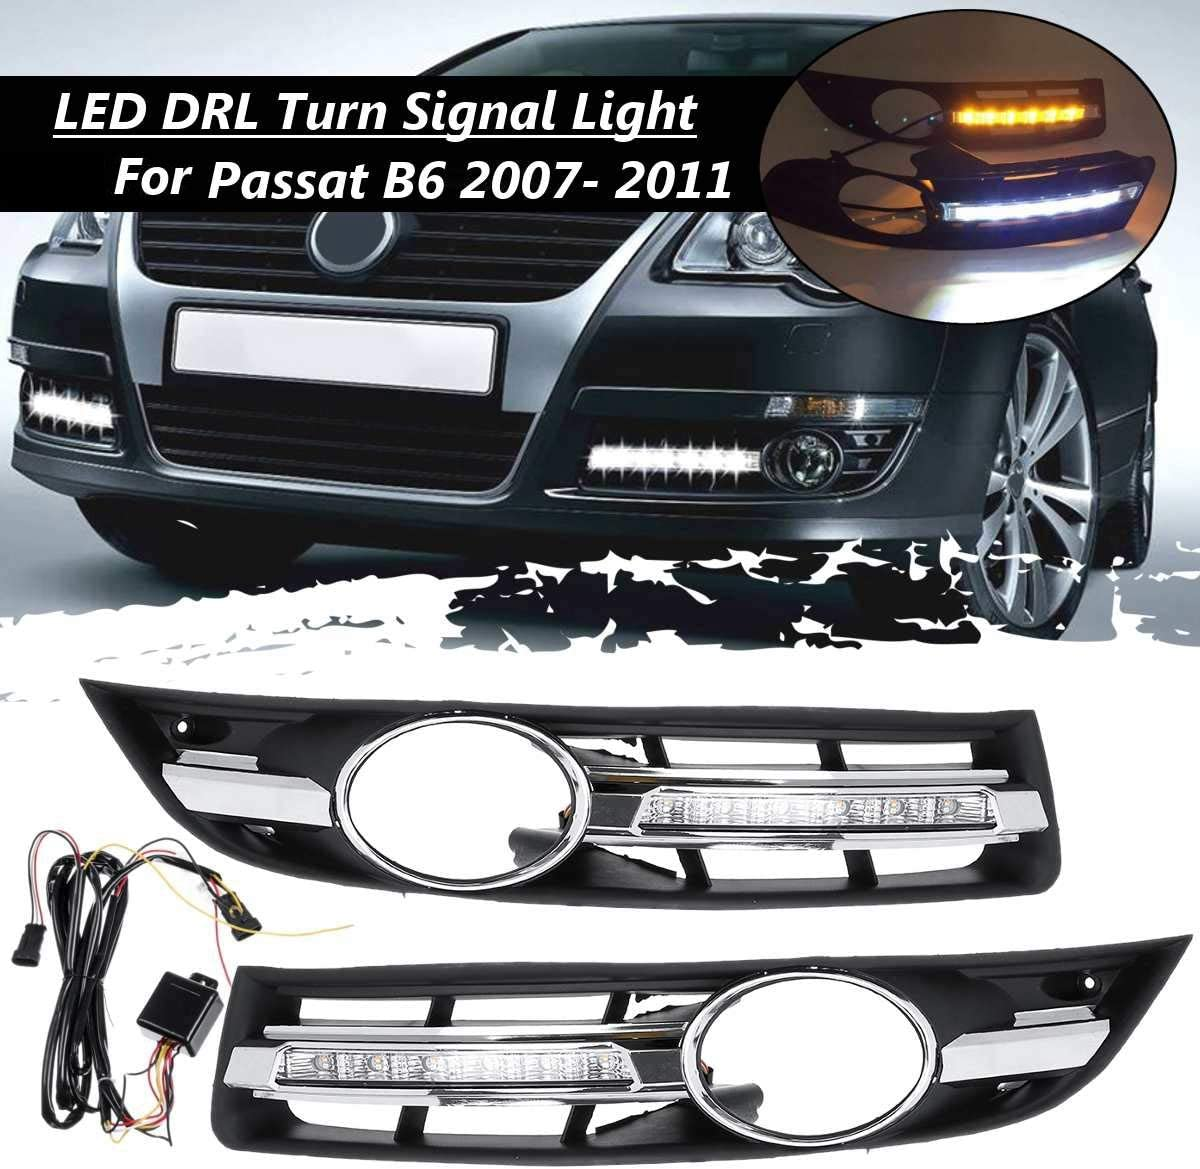 Moligh doll Car LED DRL Light Daytime Running Light with Grill Surround for Passat B6 2006-2011 Waterproof